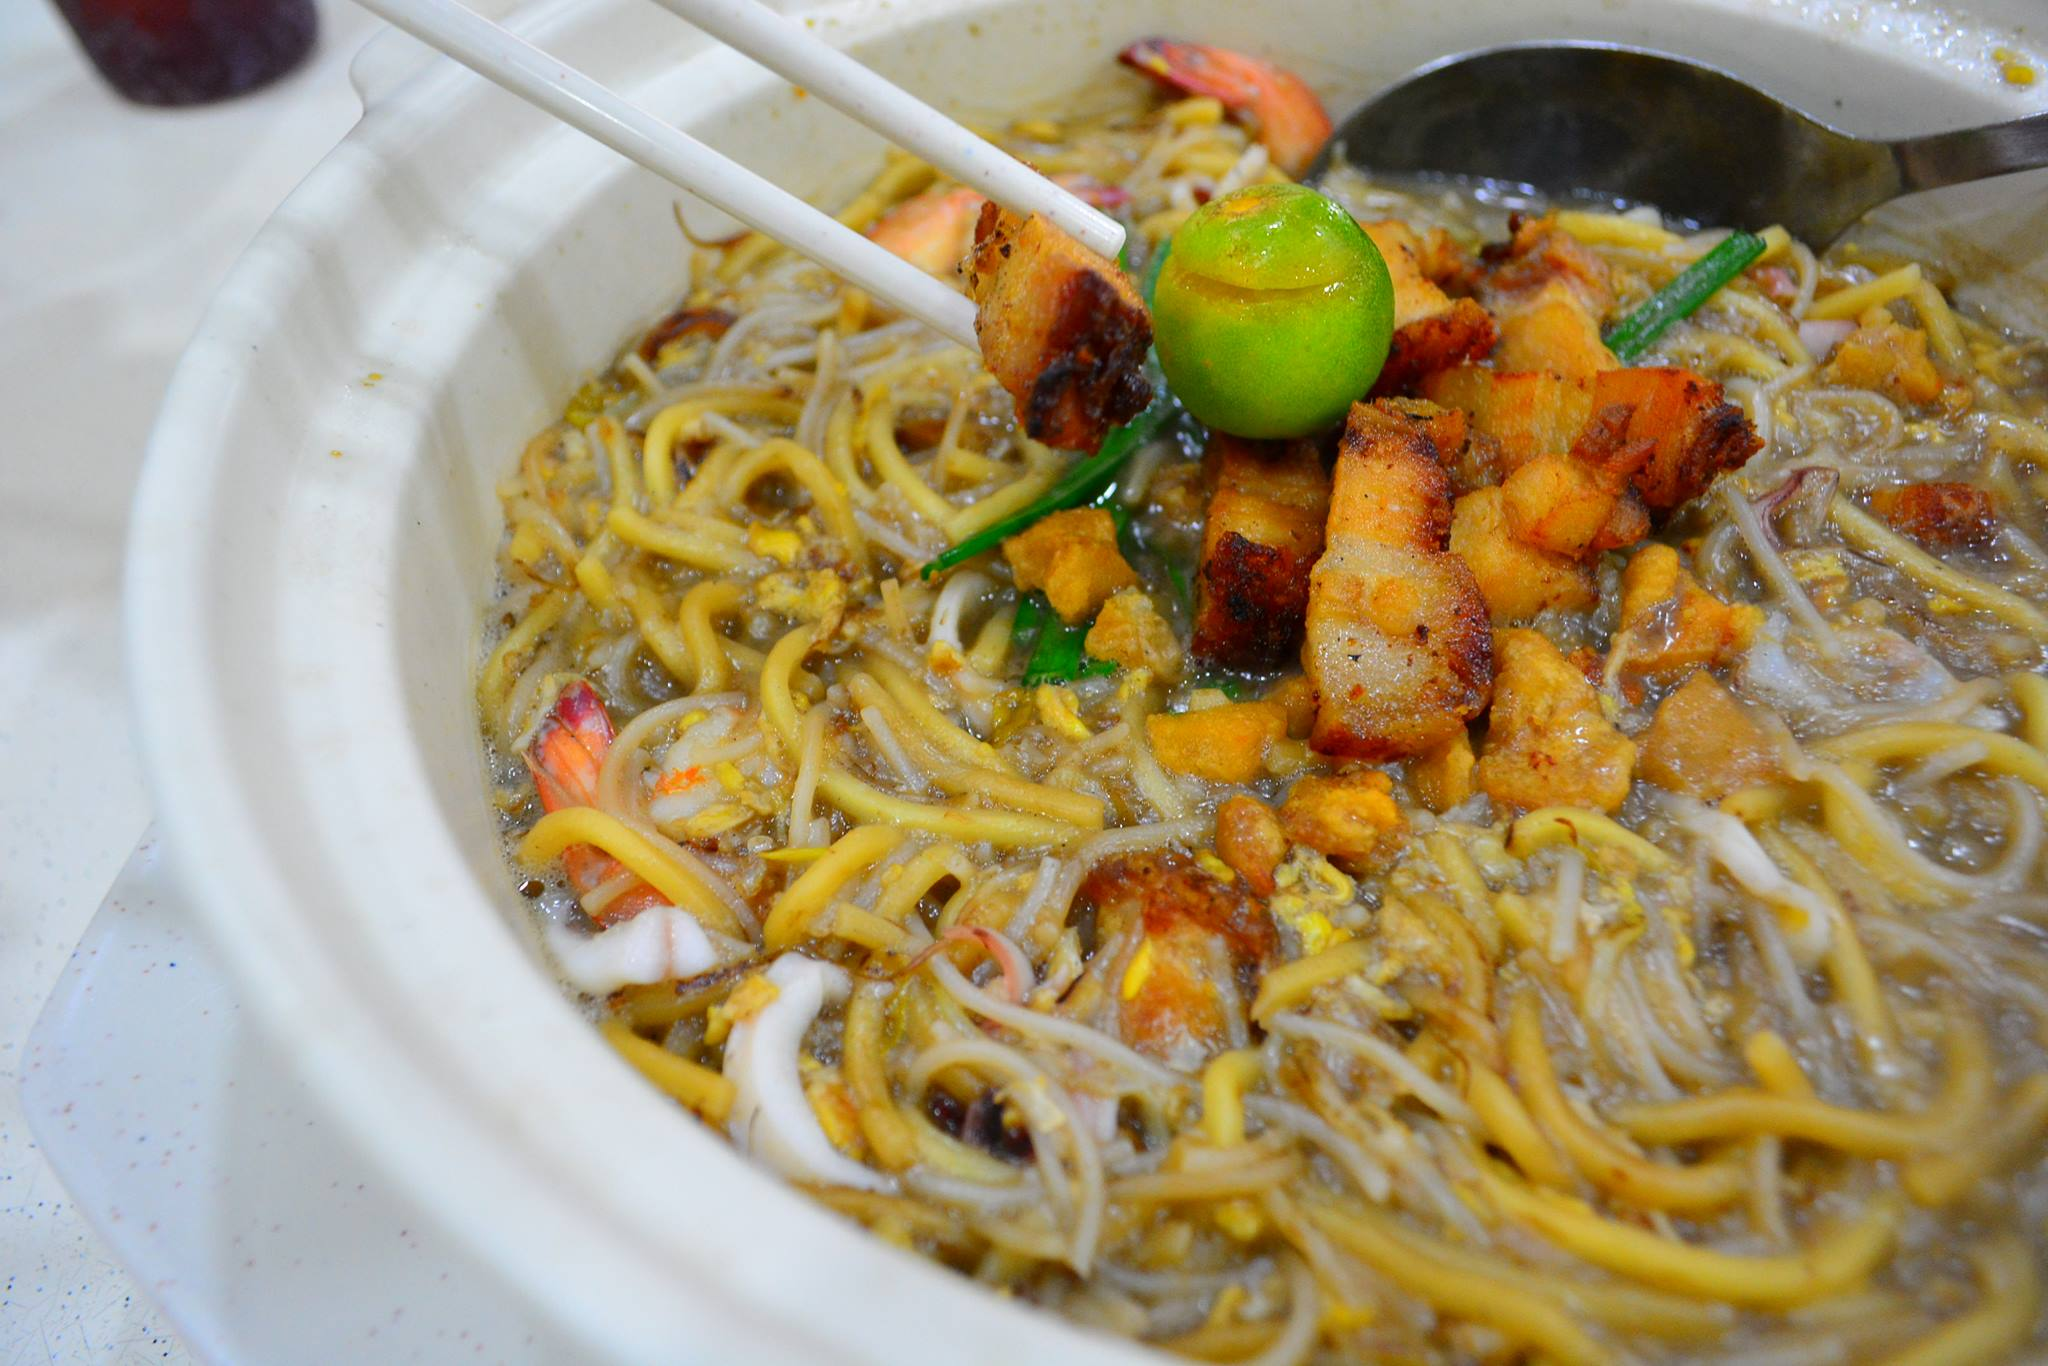 The mature estate of Toa Payoh is said to have some of Singapore's most 'true' local food, such as Kim Keat Hokkien Mee. 99.co.